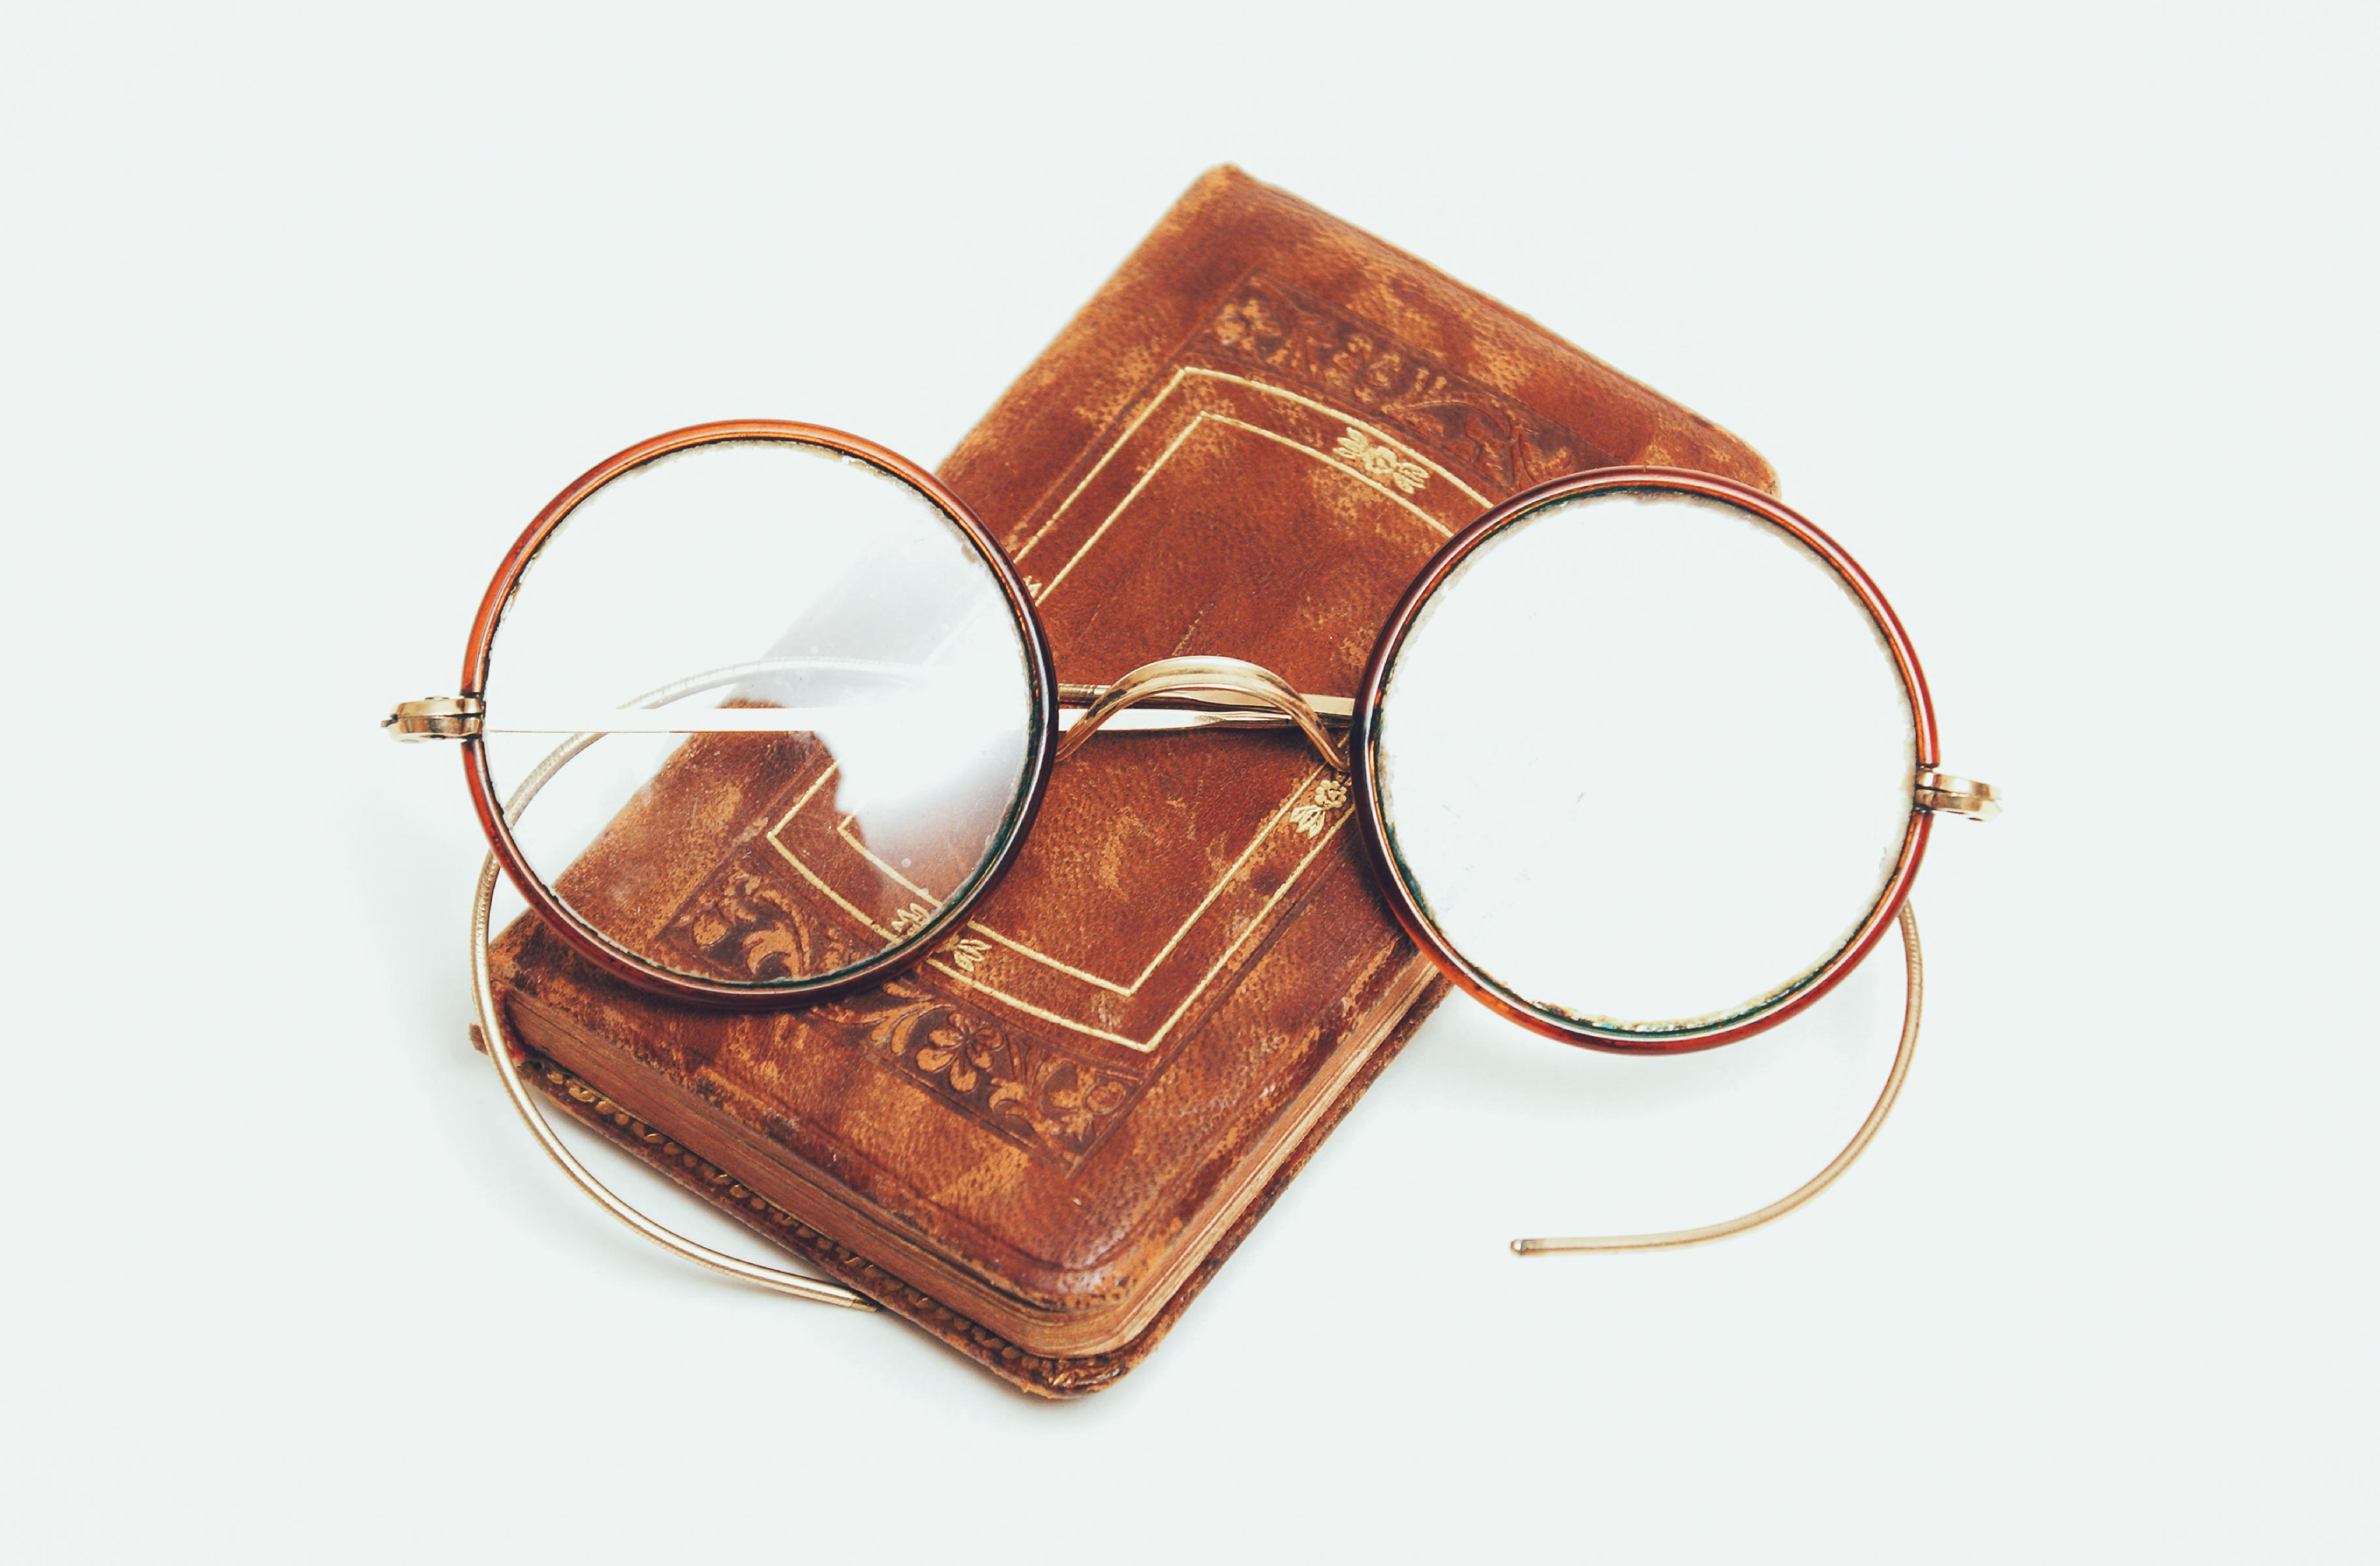 Photo of an ancient pair of glasses, to explain the history of eyeglasses.